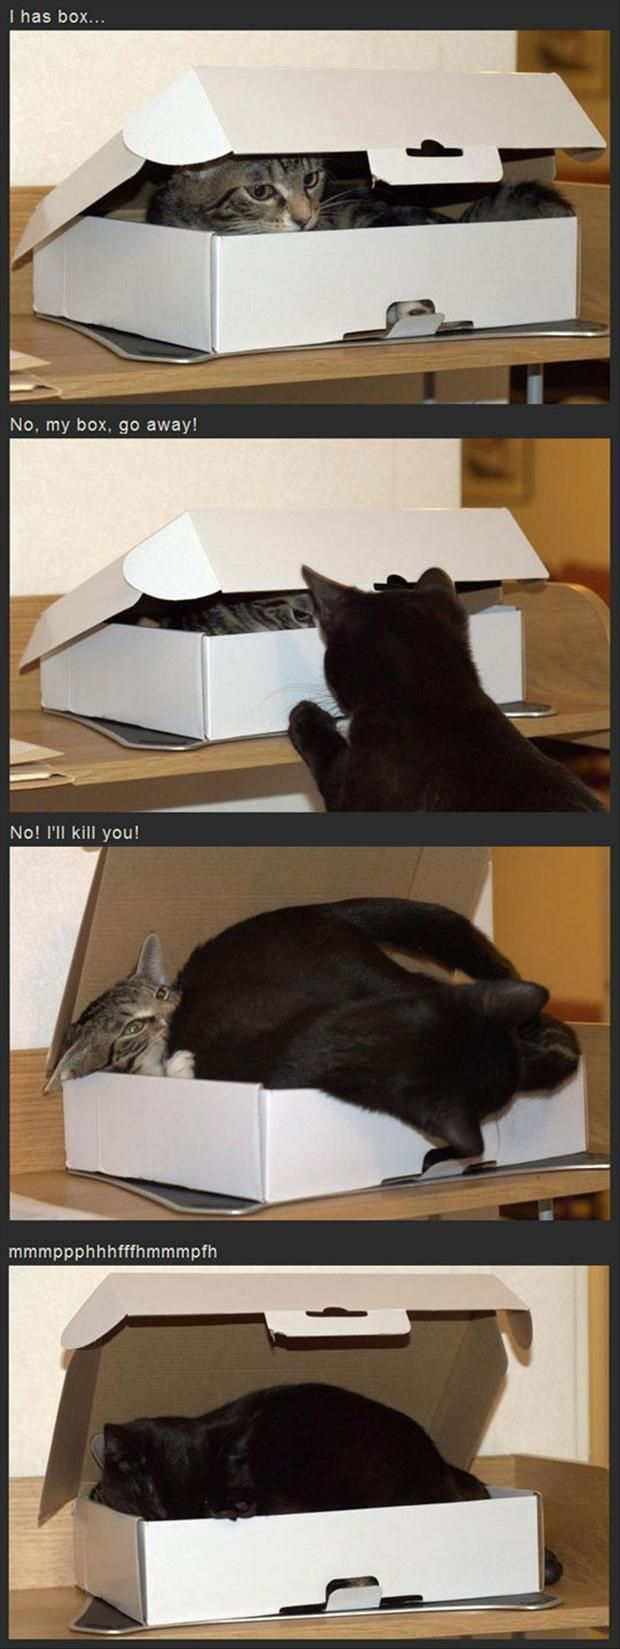 Fun box funny picture funny pic pic of fun funny image - Funny Pictures Dumpaday Images 1538